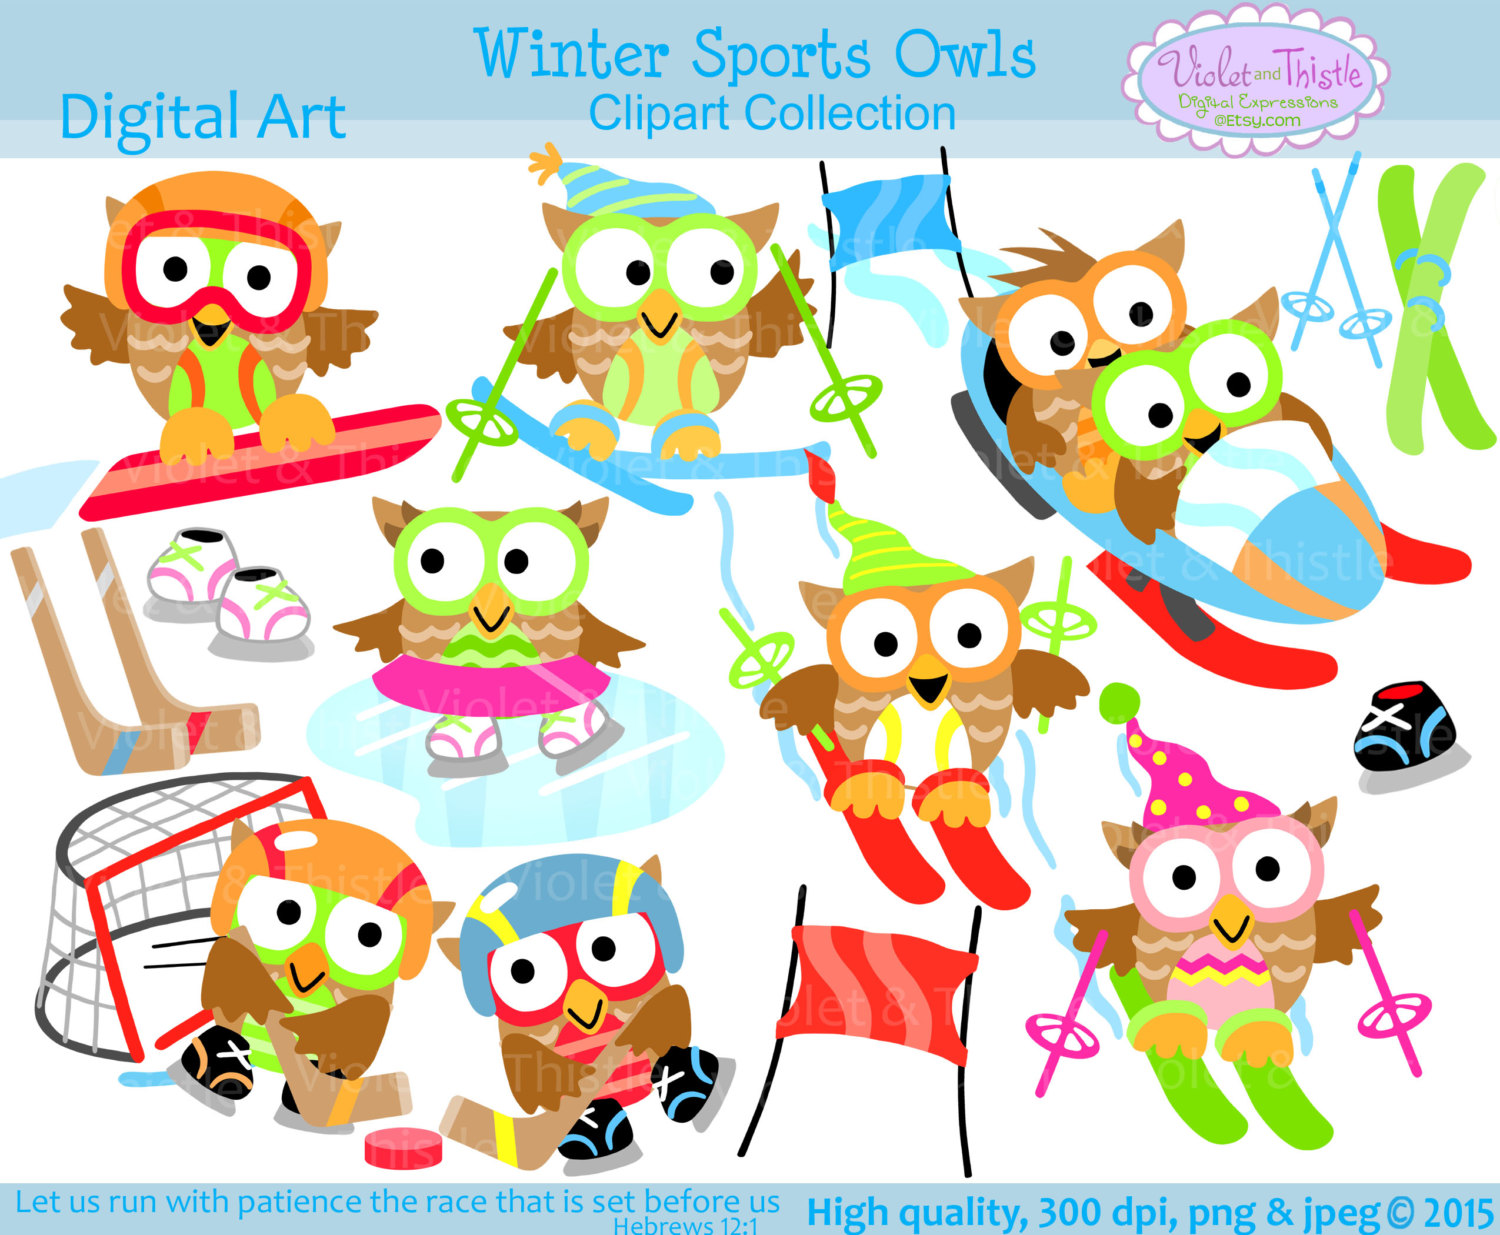 Snowboarding clipart downhill Snowboarding goal skiing stick Skiing